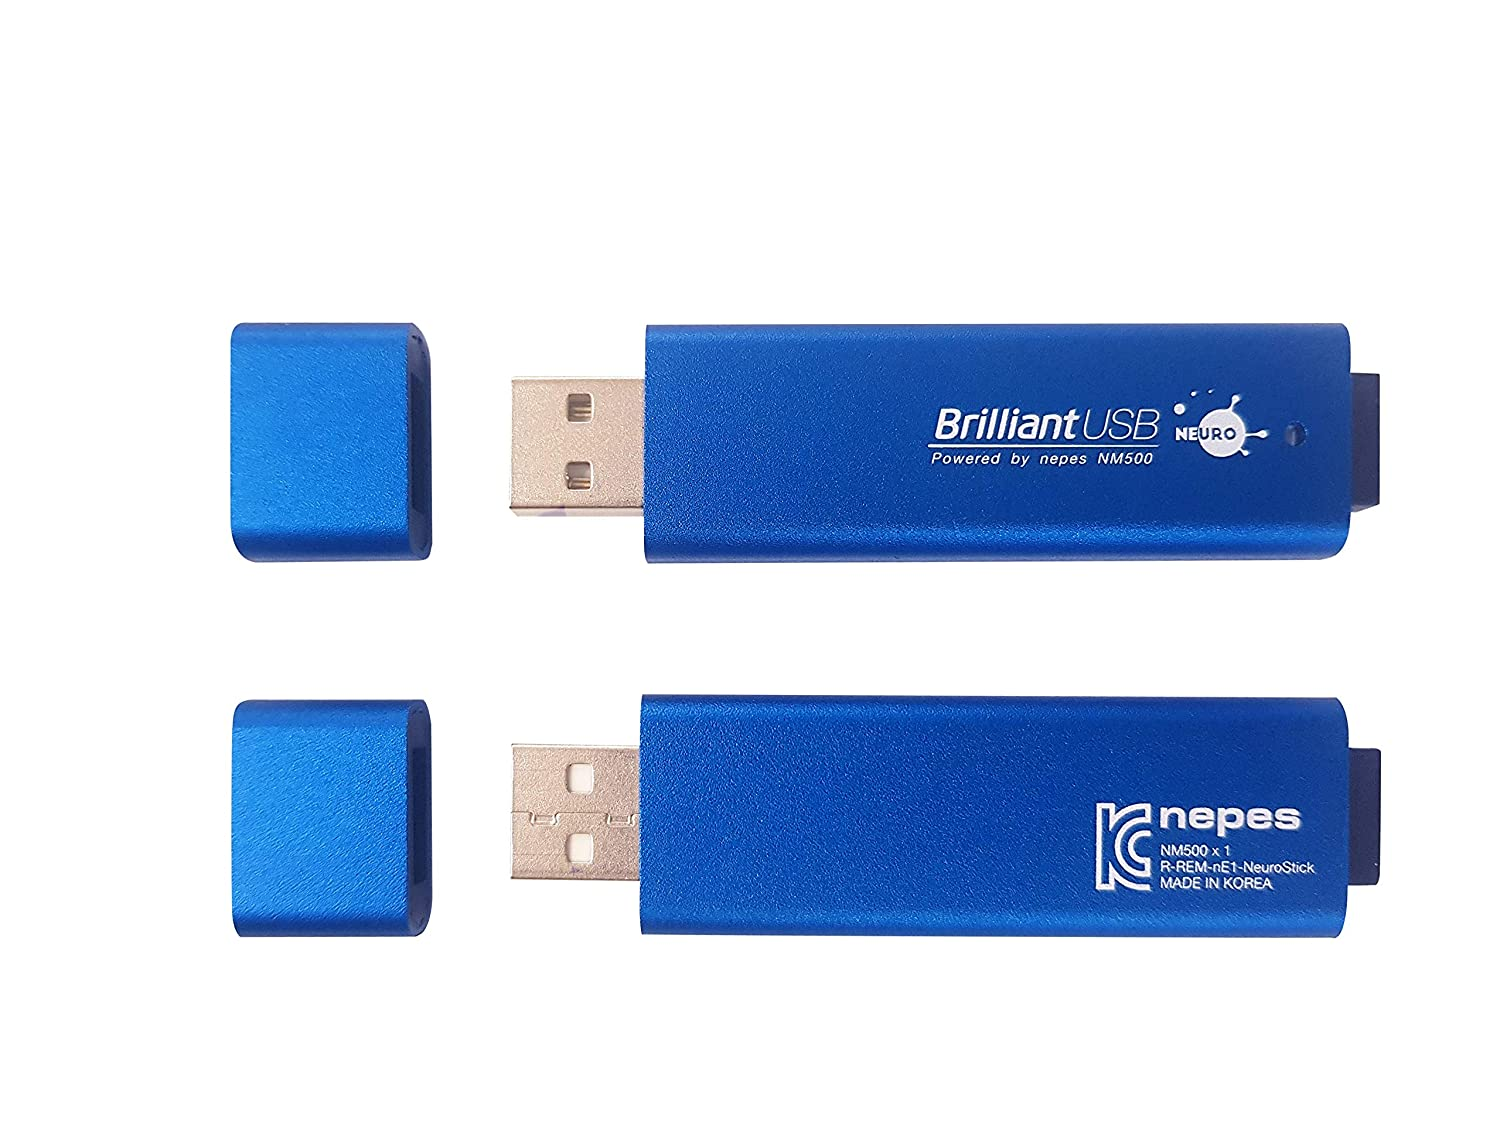 neuromorphic chip NM500 1 Practical AI Enabled Platform NM500 nepes Brilliant USB